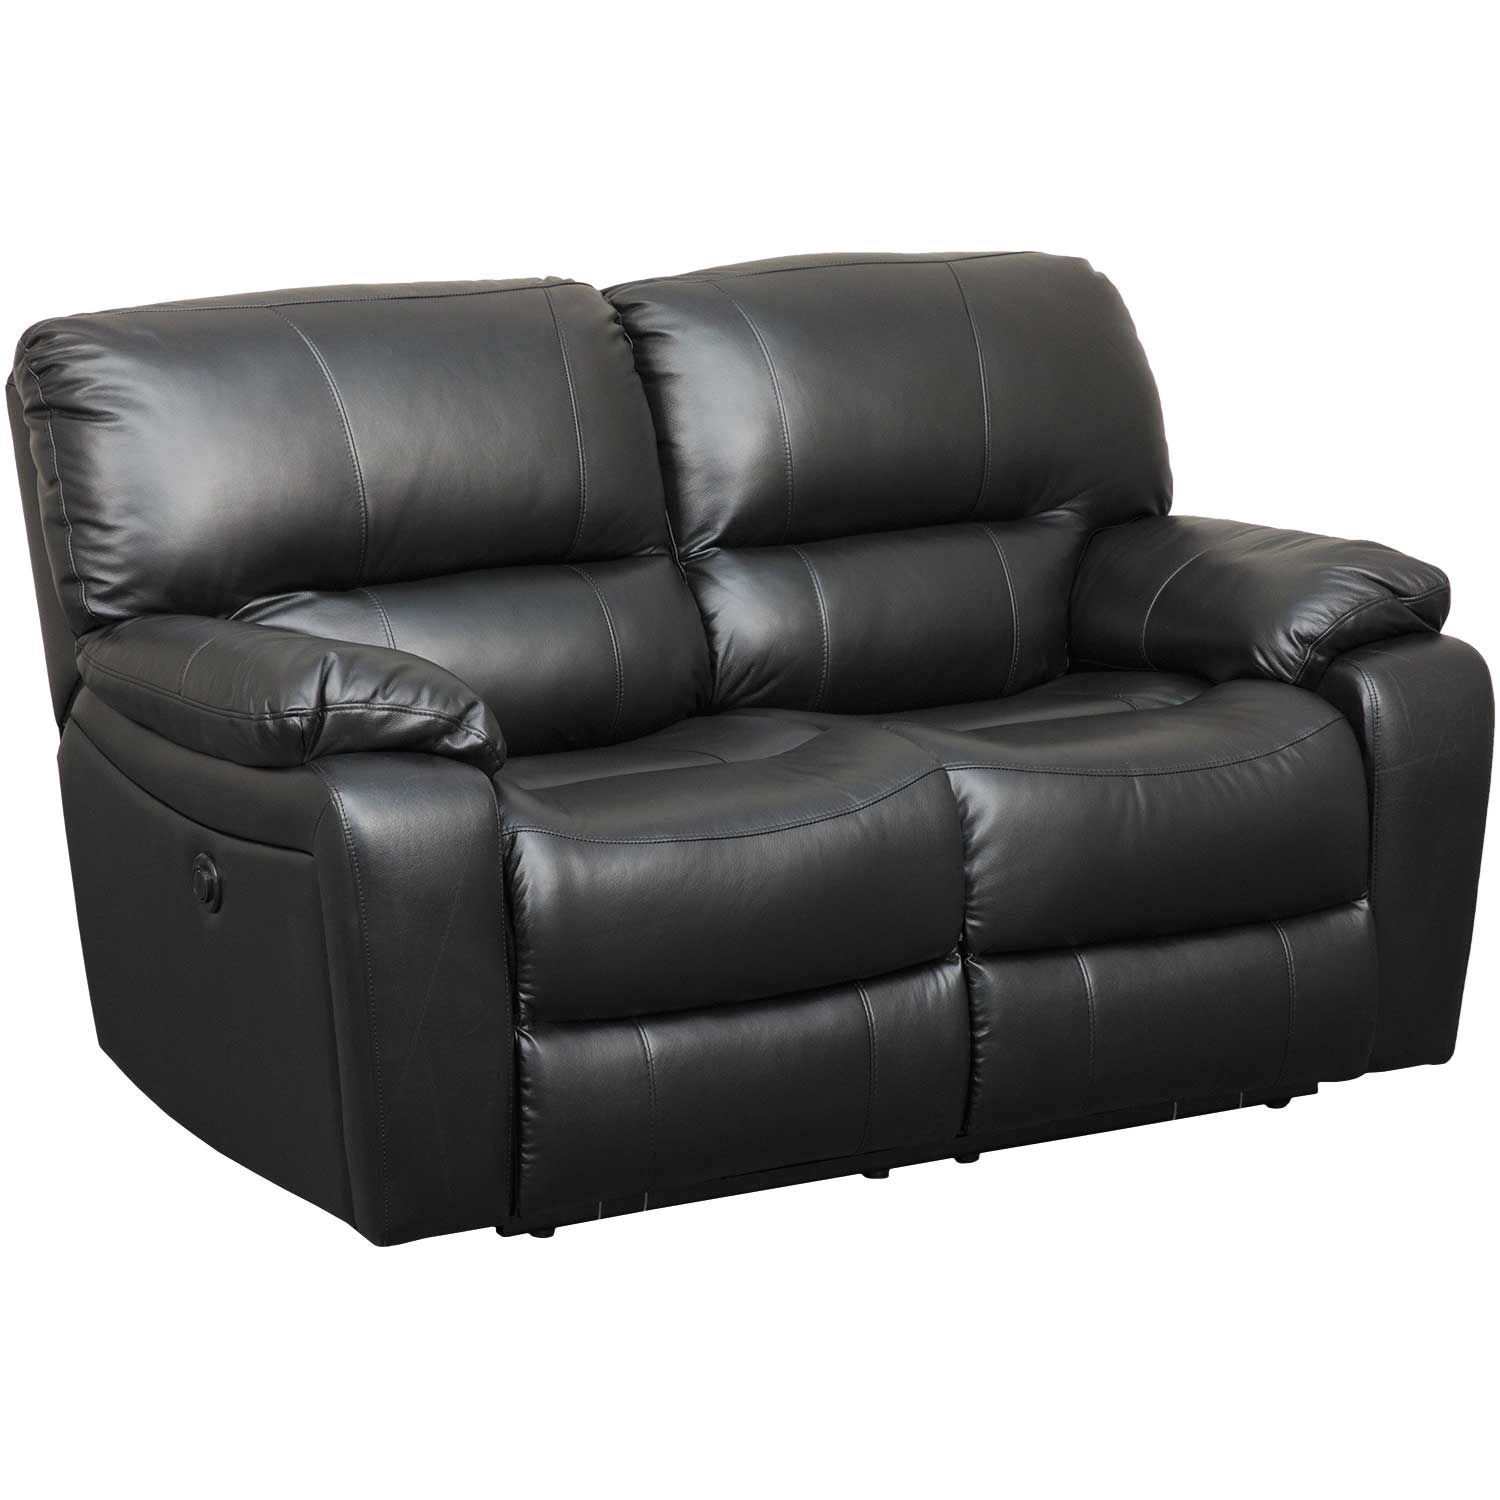 Phenomenal Wade Black Top Grain Power Reclining Loveseat Inzonedesignstudio Interior Chair Design Inzonedesignstudiocom